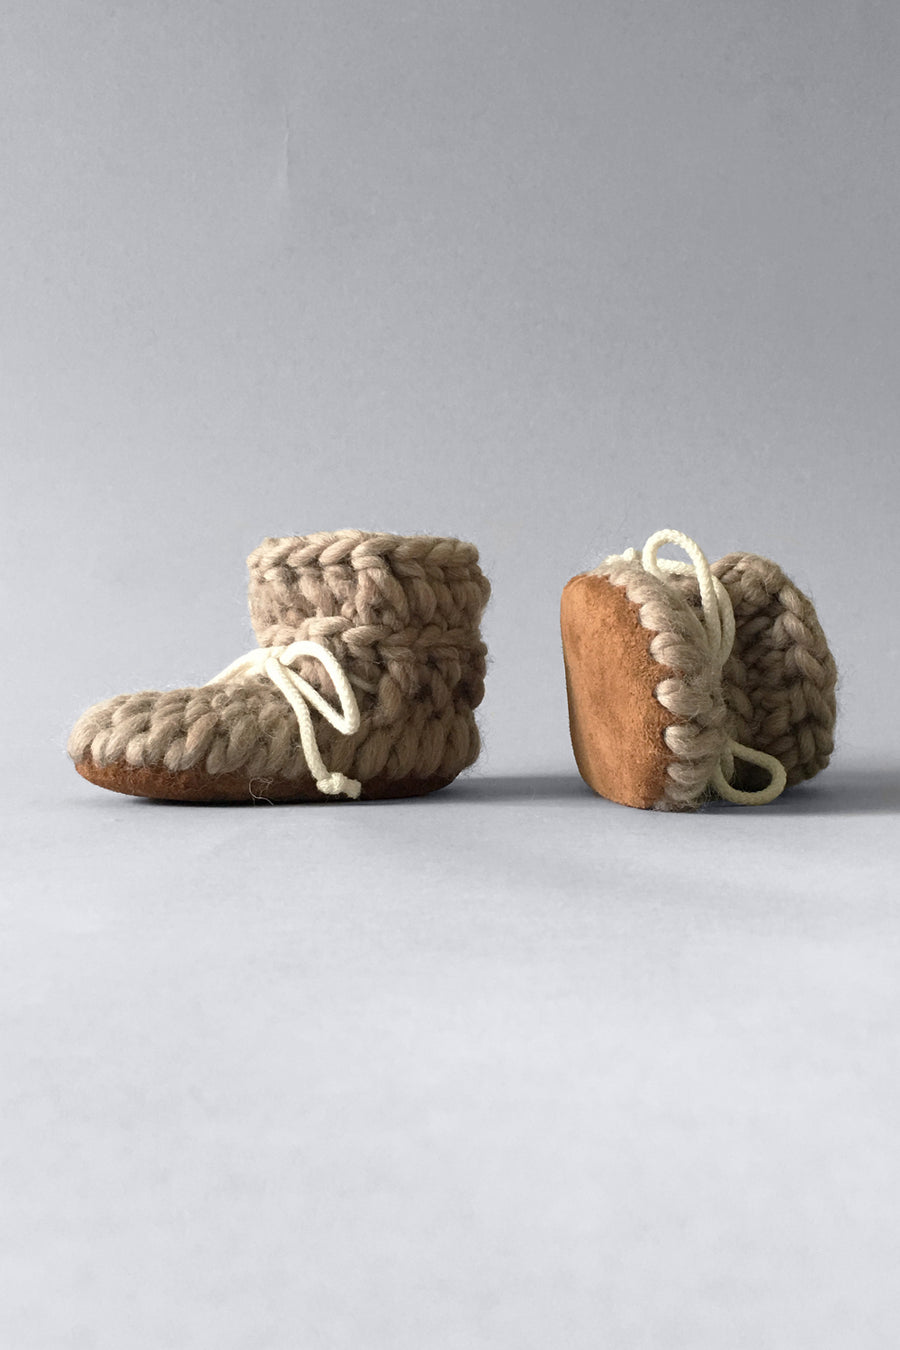 Crochet beige wool baby shoes with leather soles, handmade in Canada